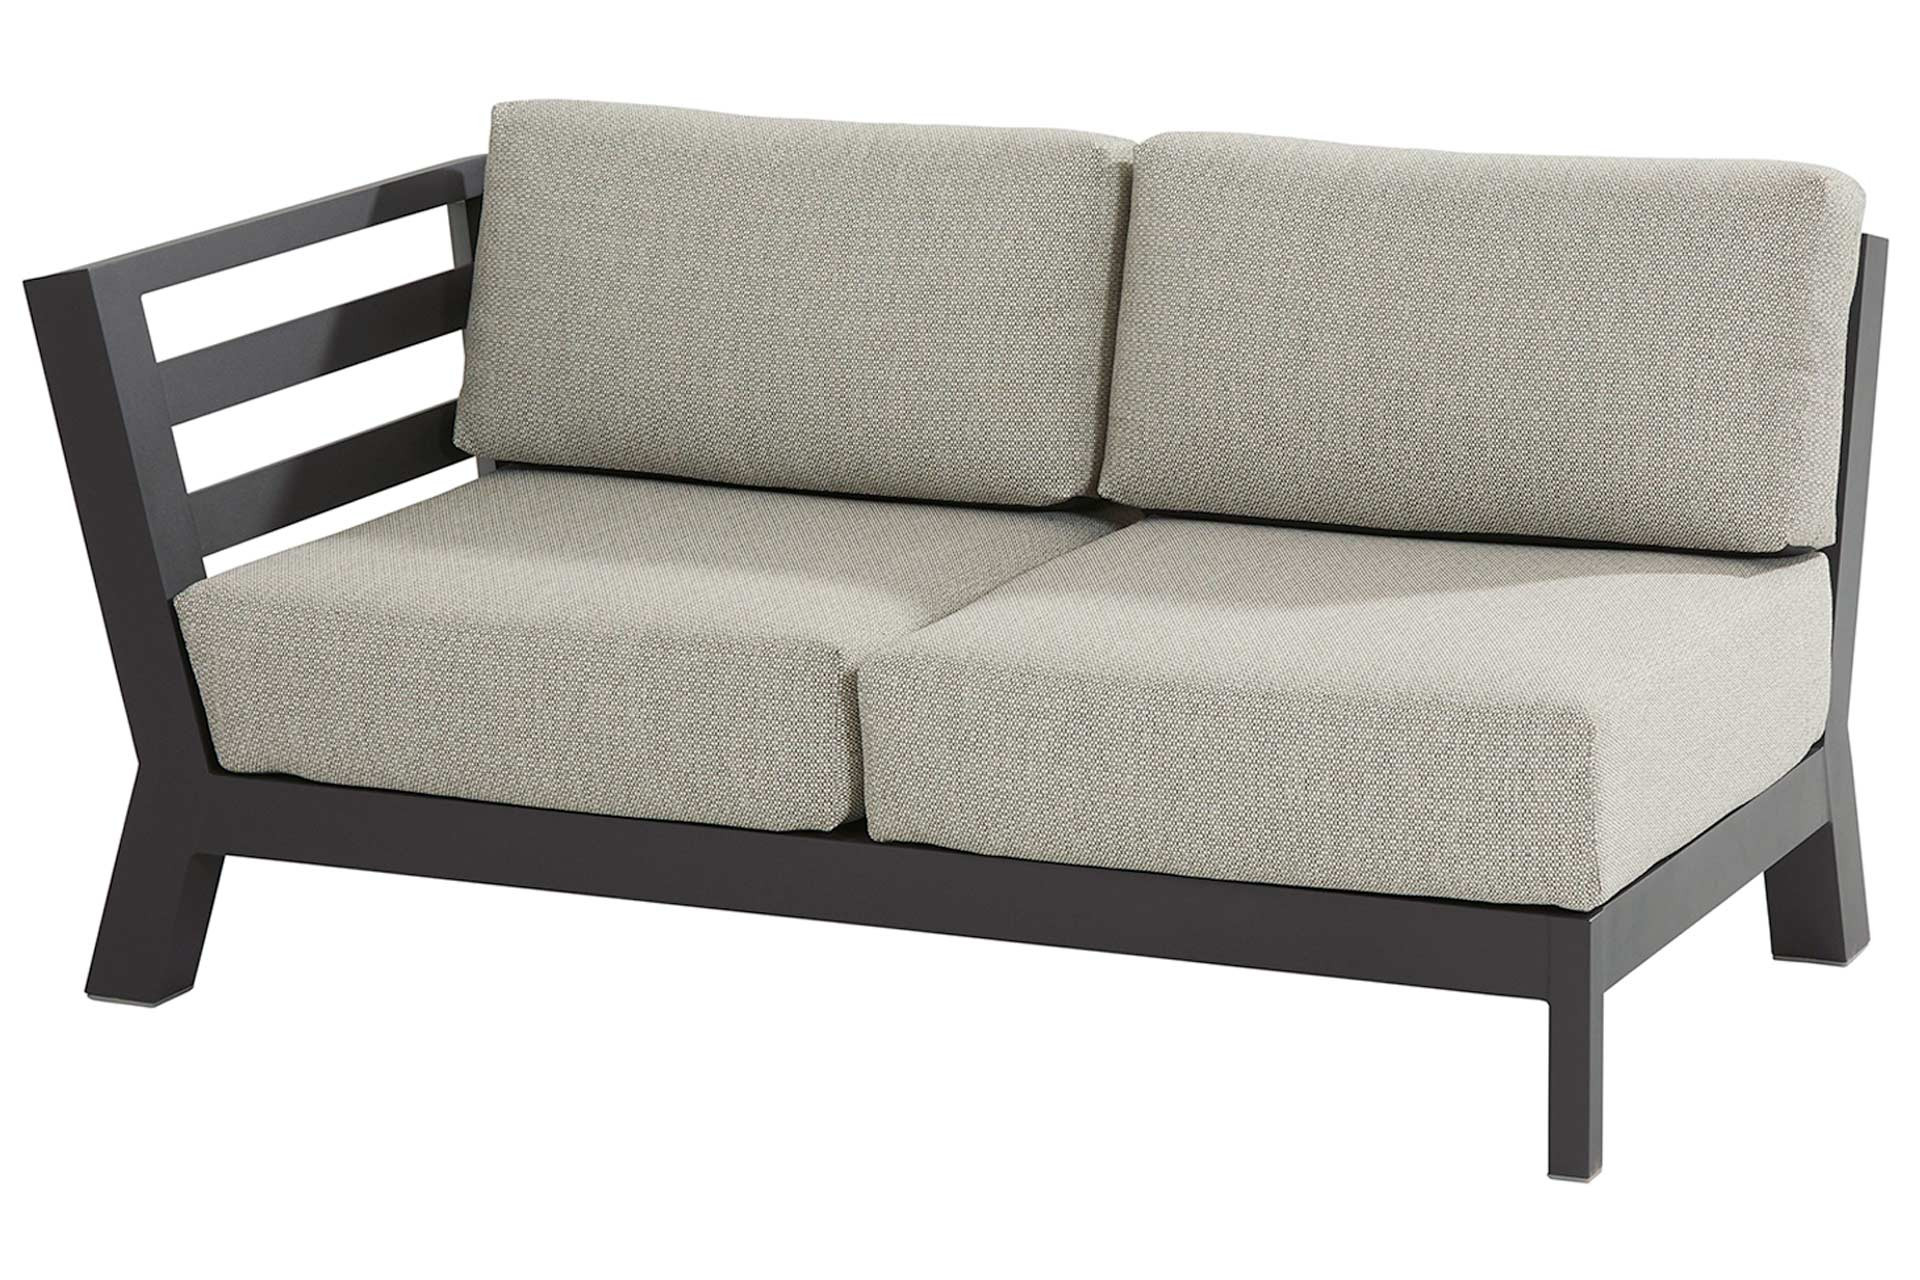 Meteoro modular 2 seater bench R arm with 4 cushions Anthracite